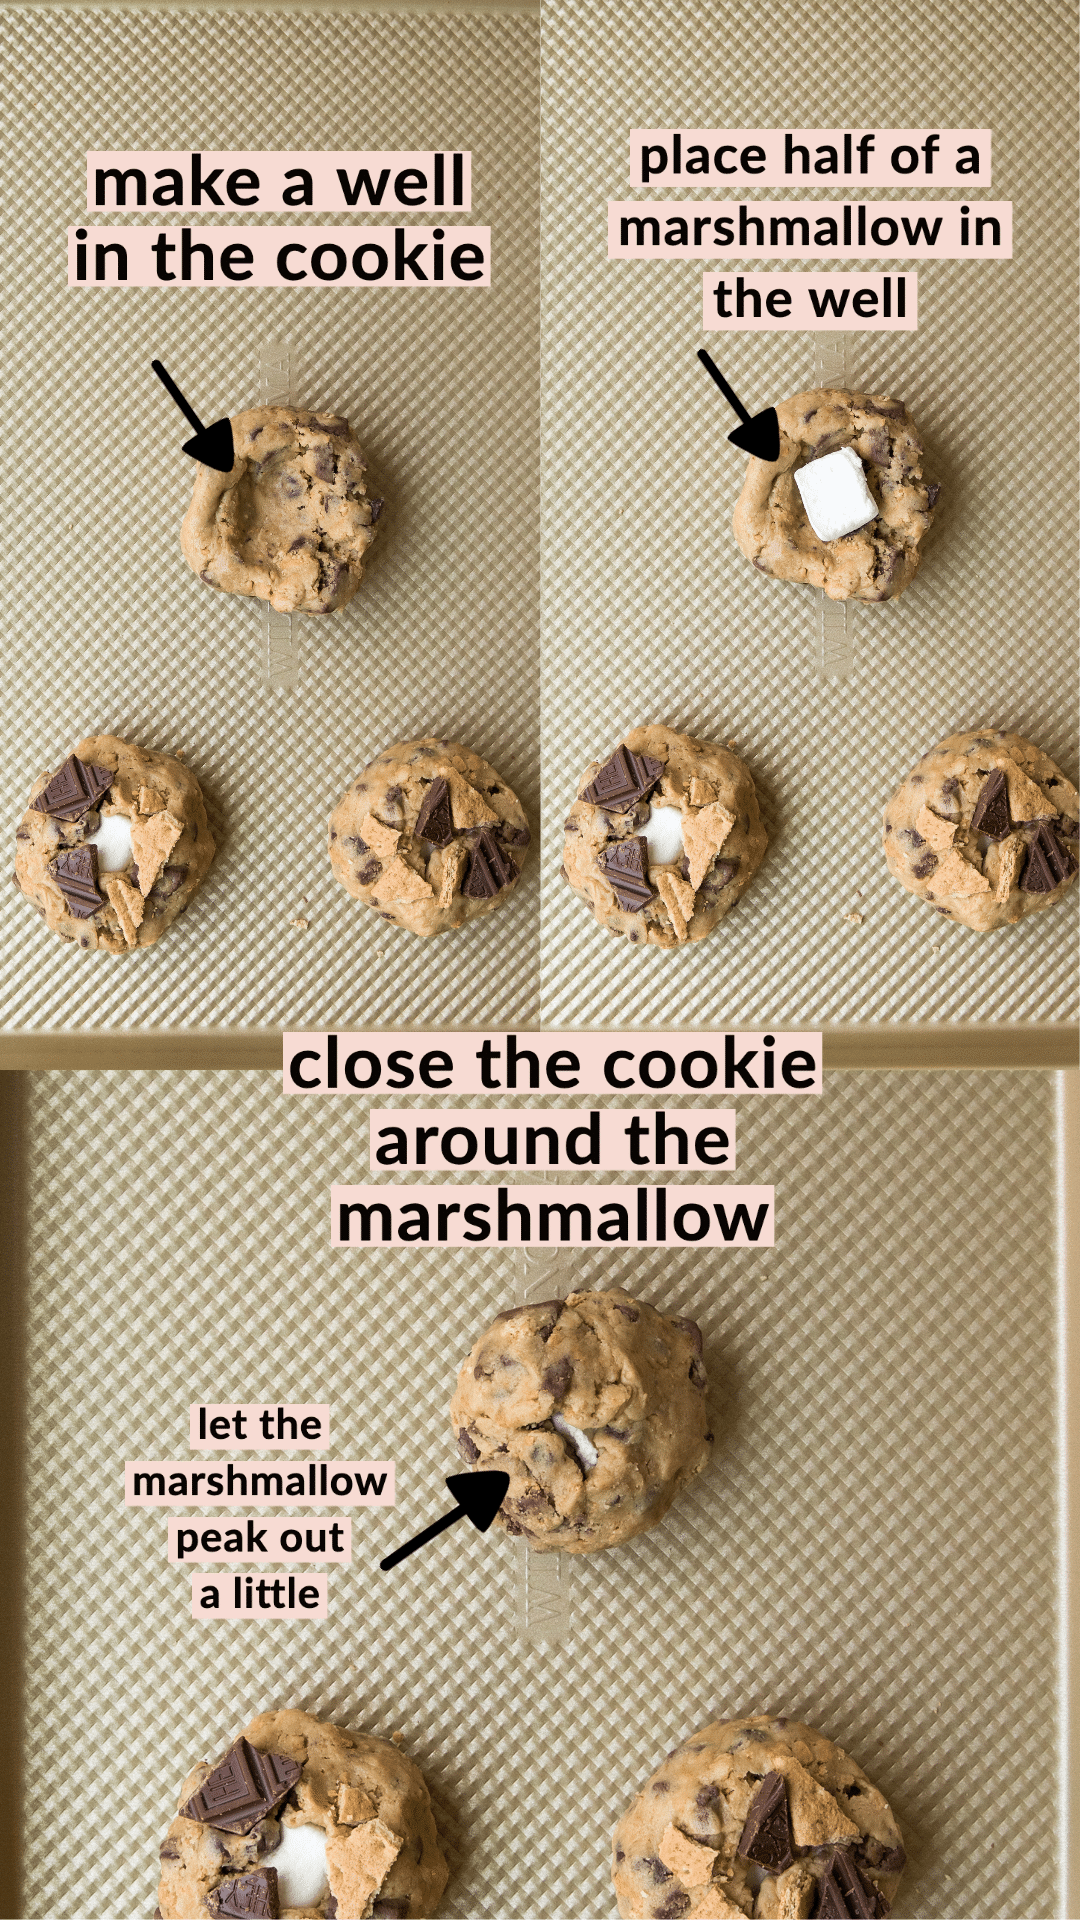 photos of how to stuff the marshmallow inside the cookie